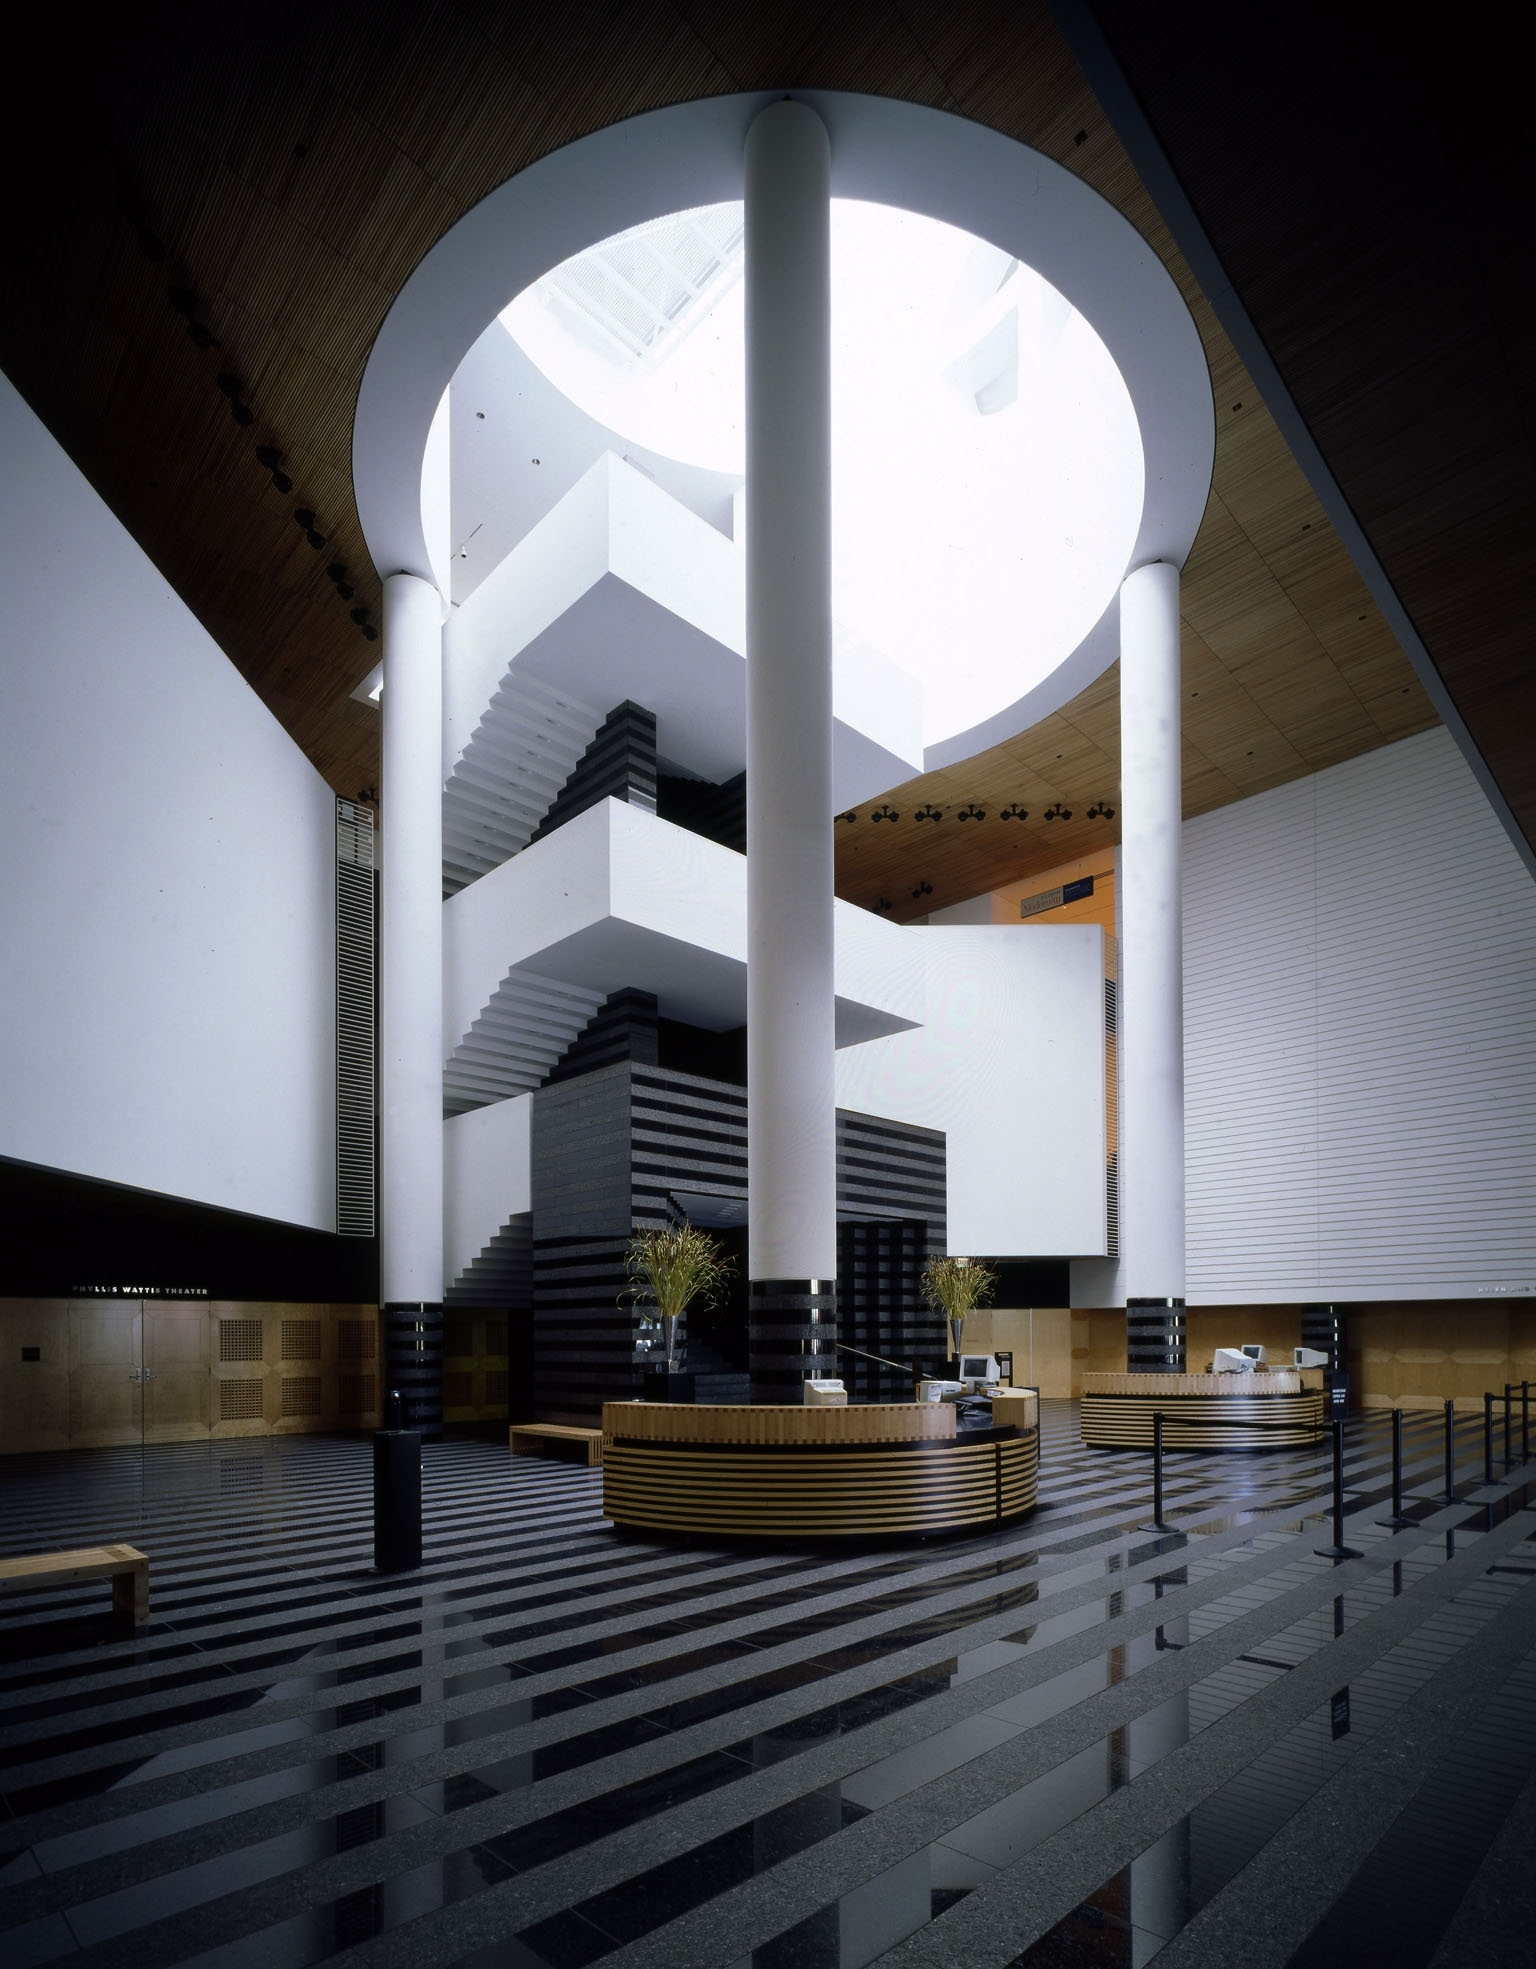 Musée d'art moderne de San Francisco, photo: Pino Musi